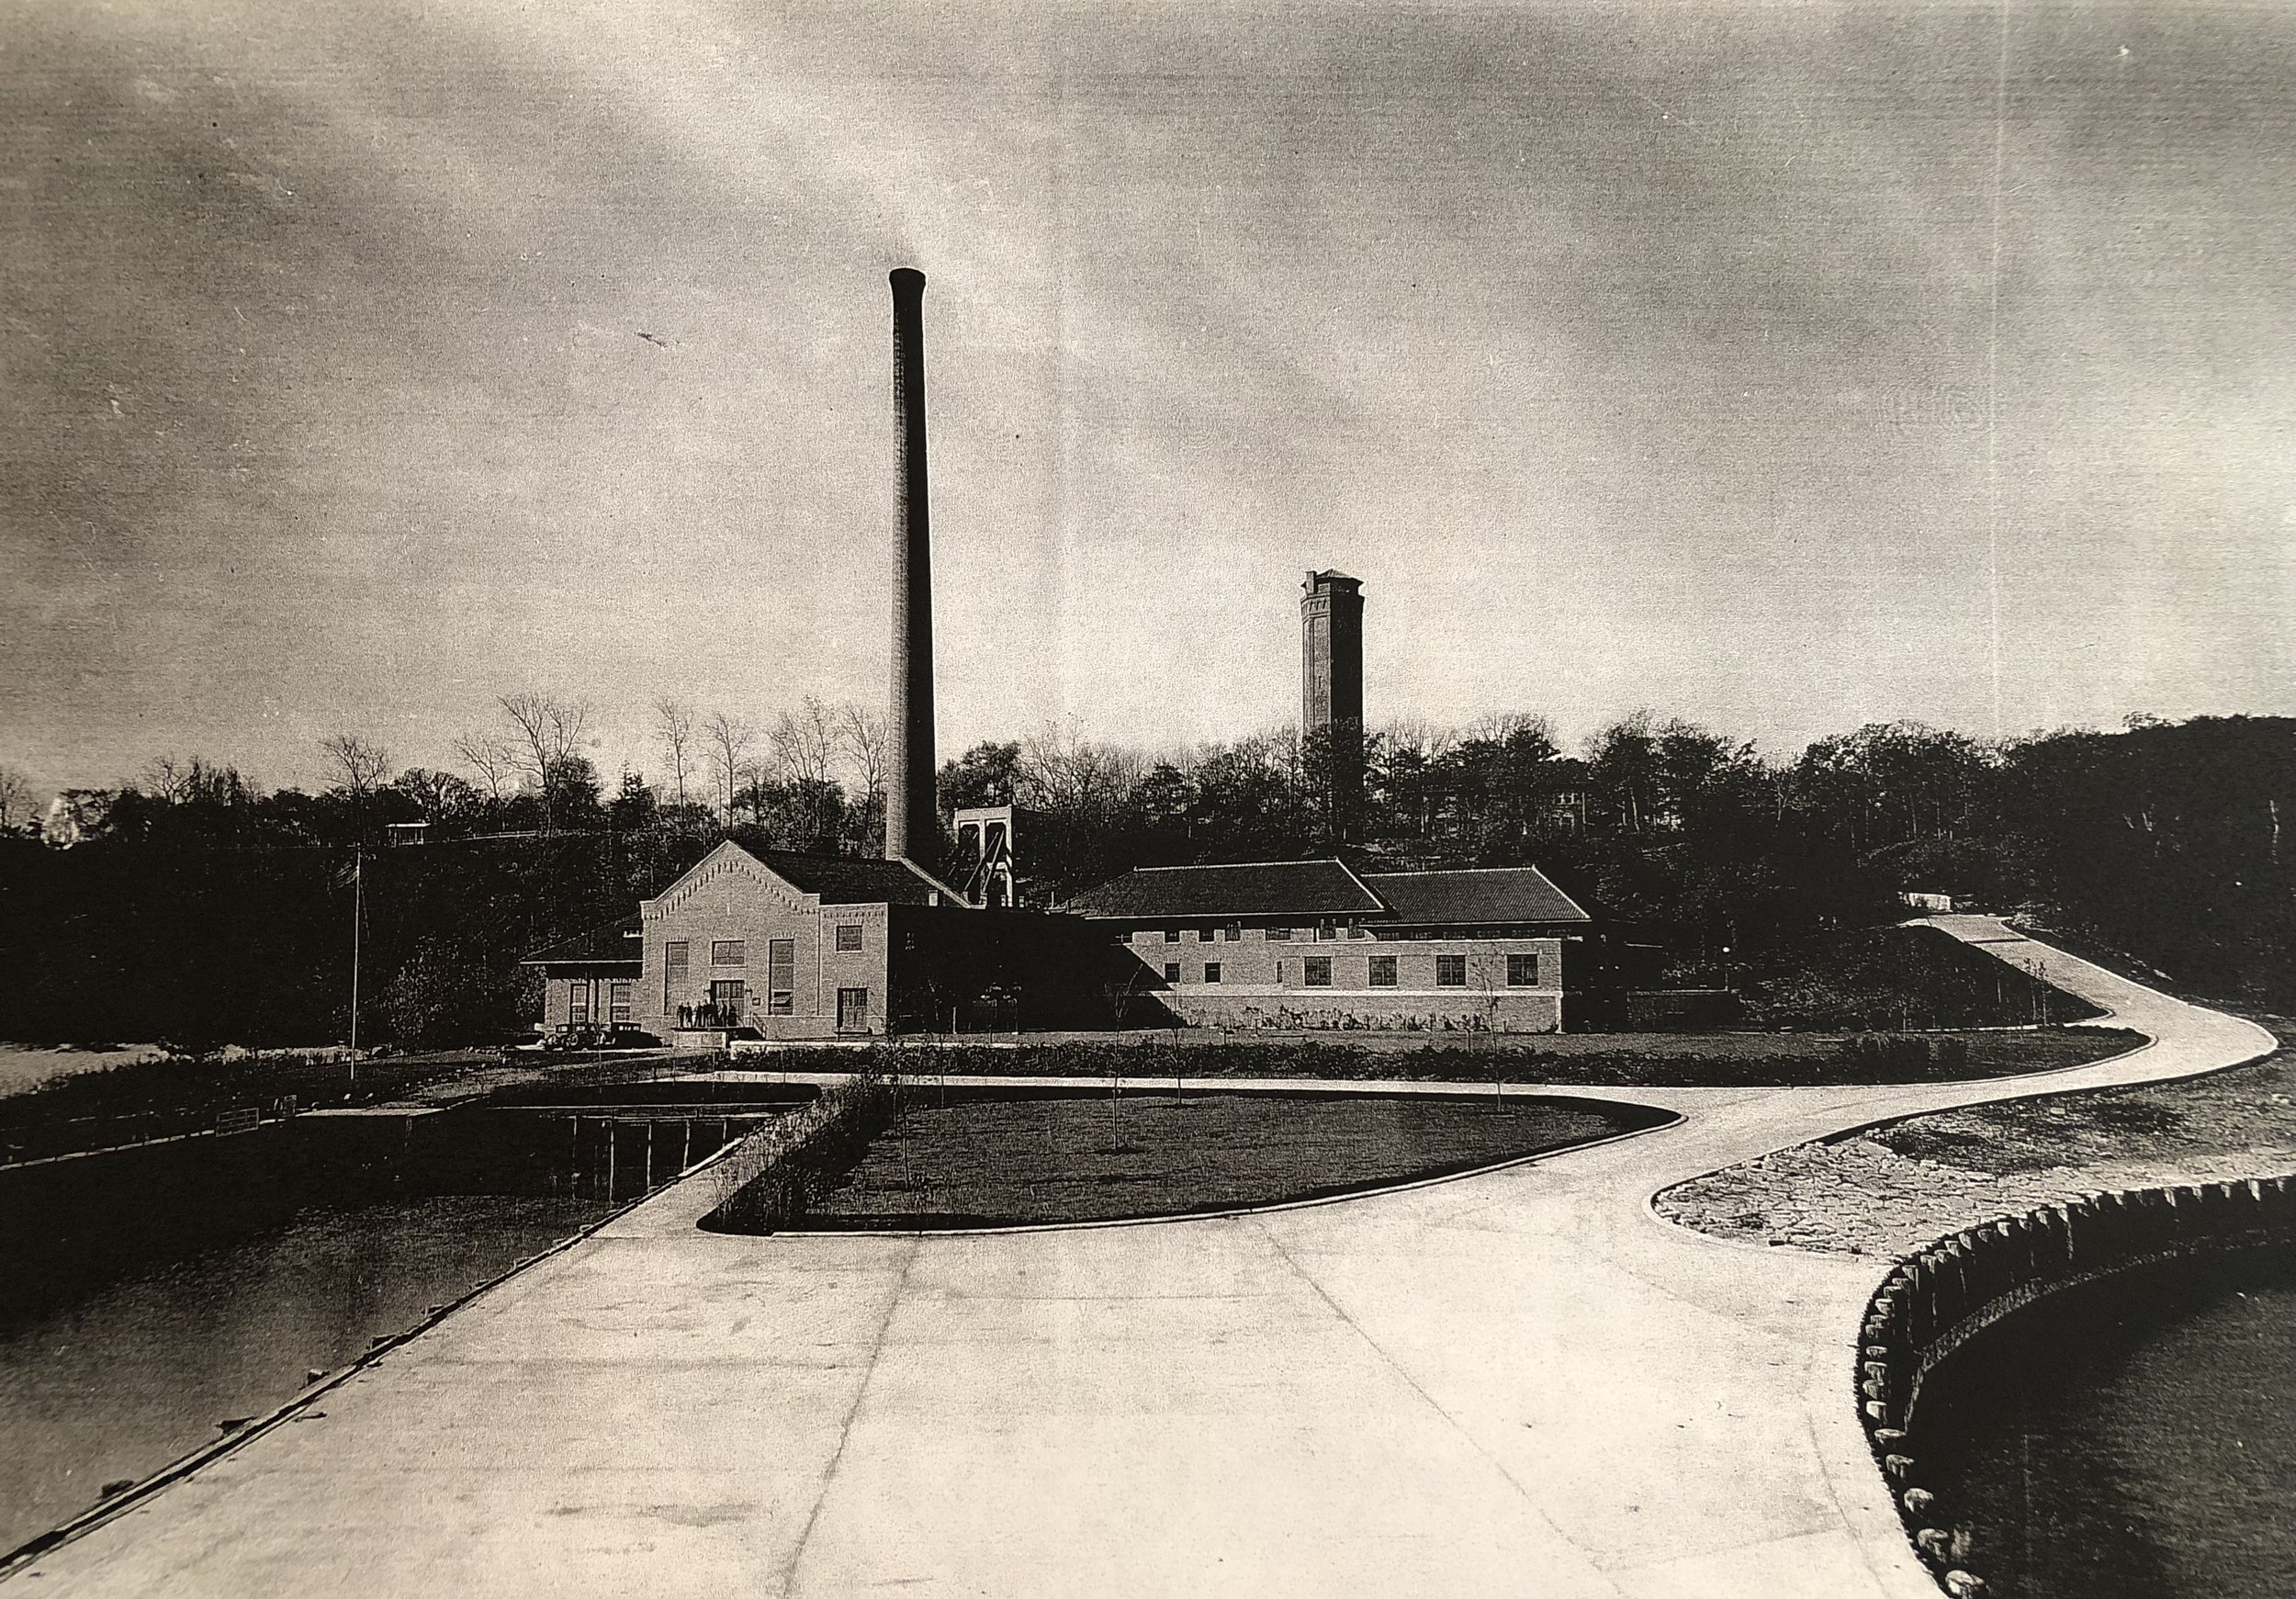 Water & Electric Plant circa 1930